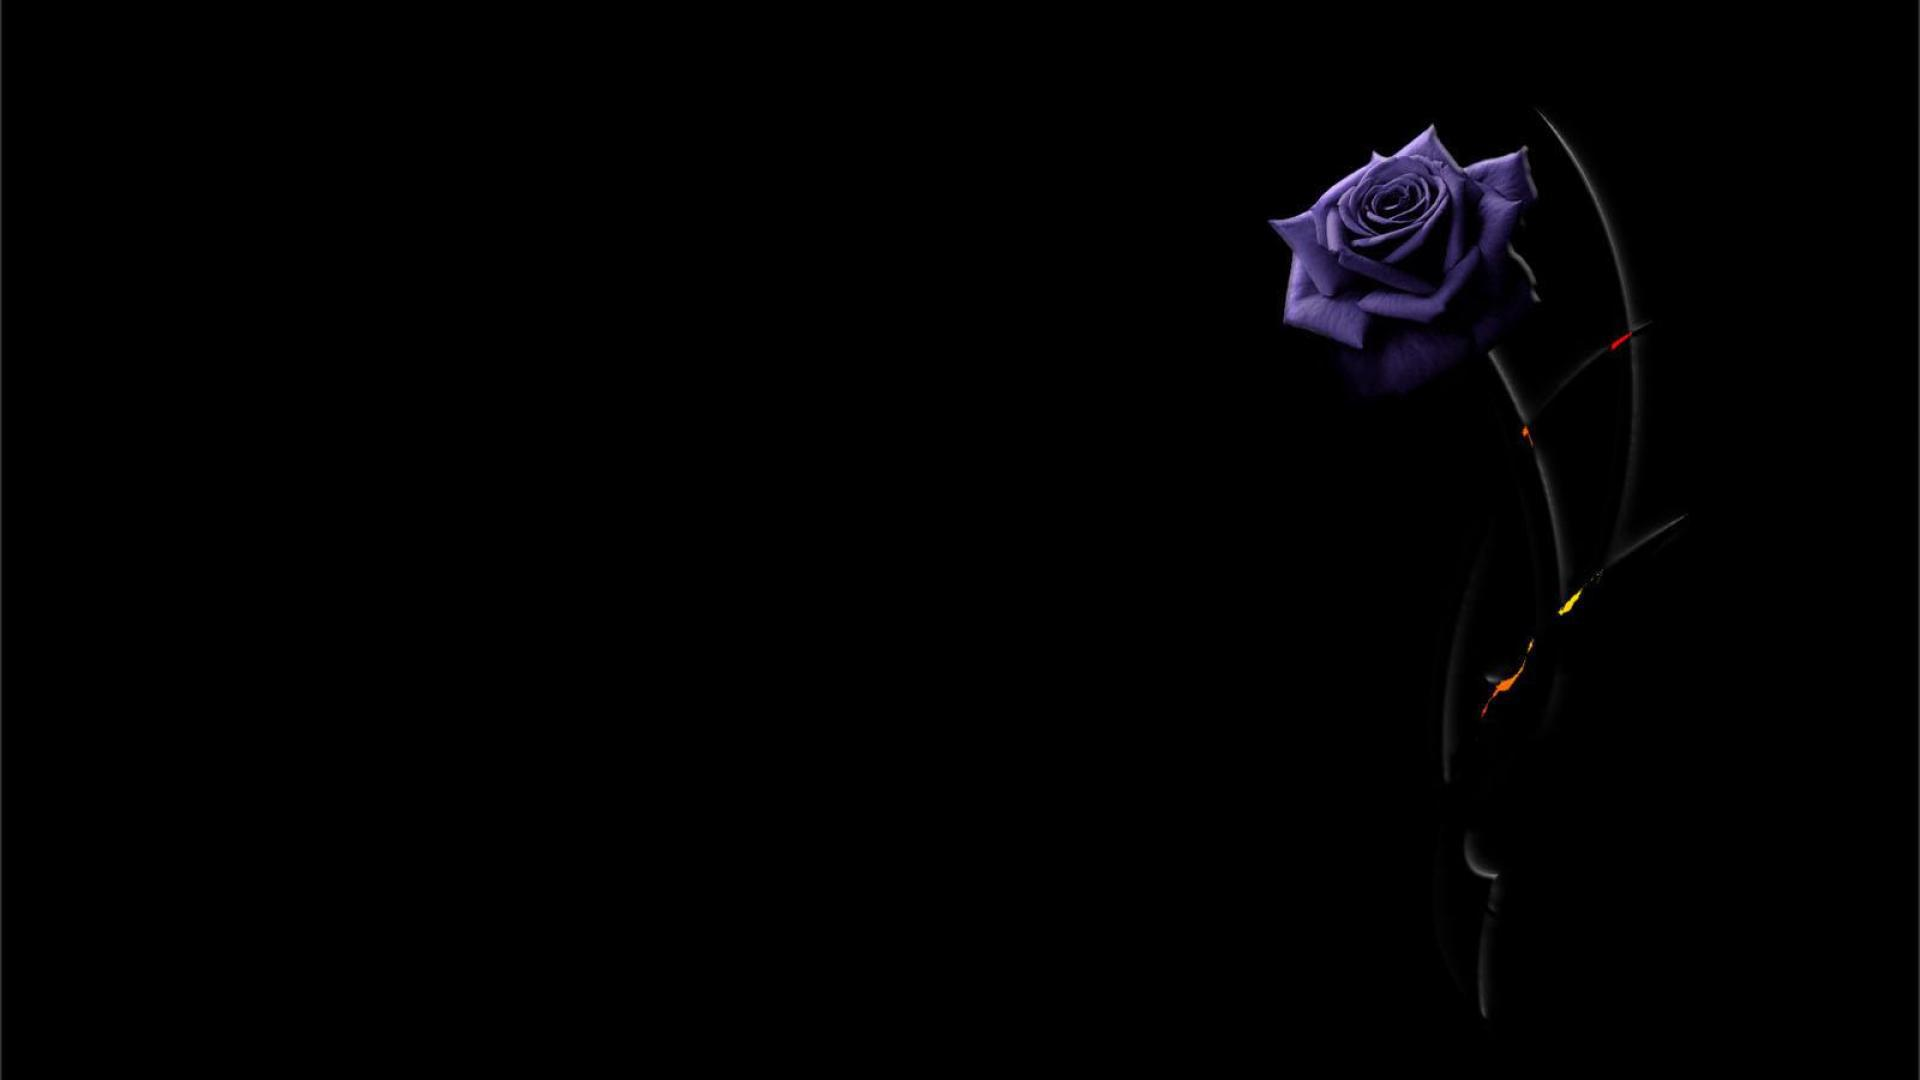 black background wallpapers and images   wallpapers pictures photos 1920x1080